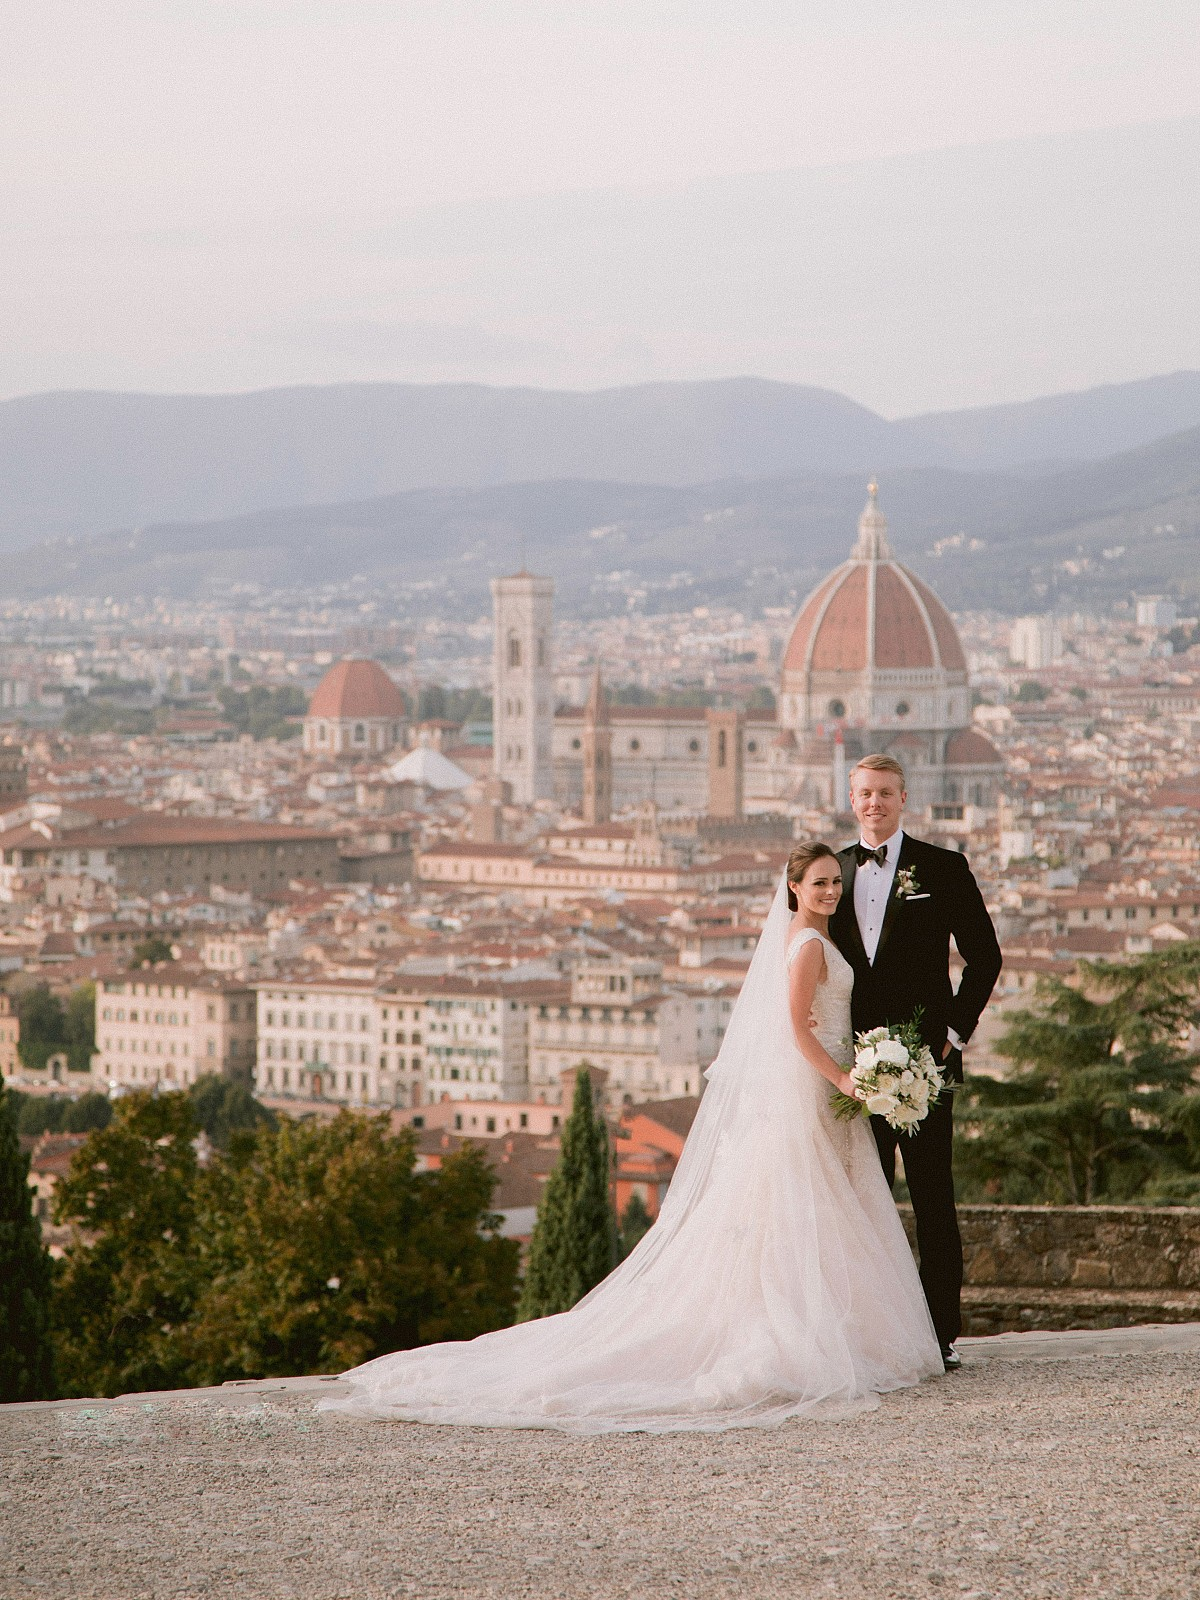 How to Plan a Tuscany Wedding from the USA